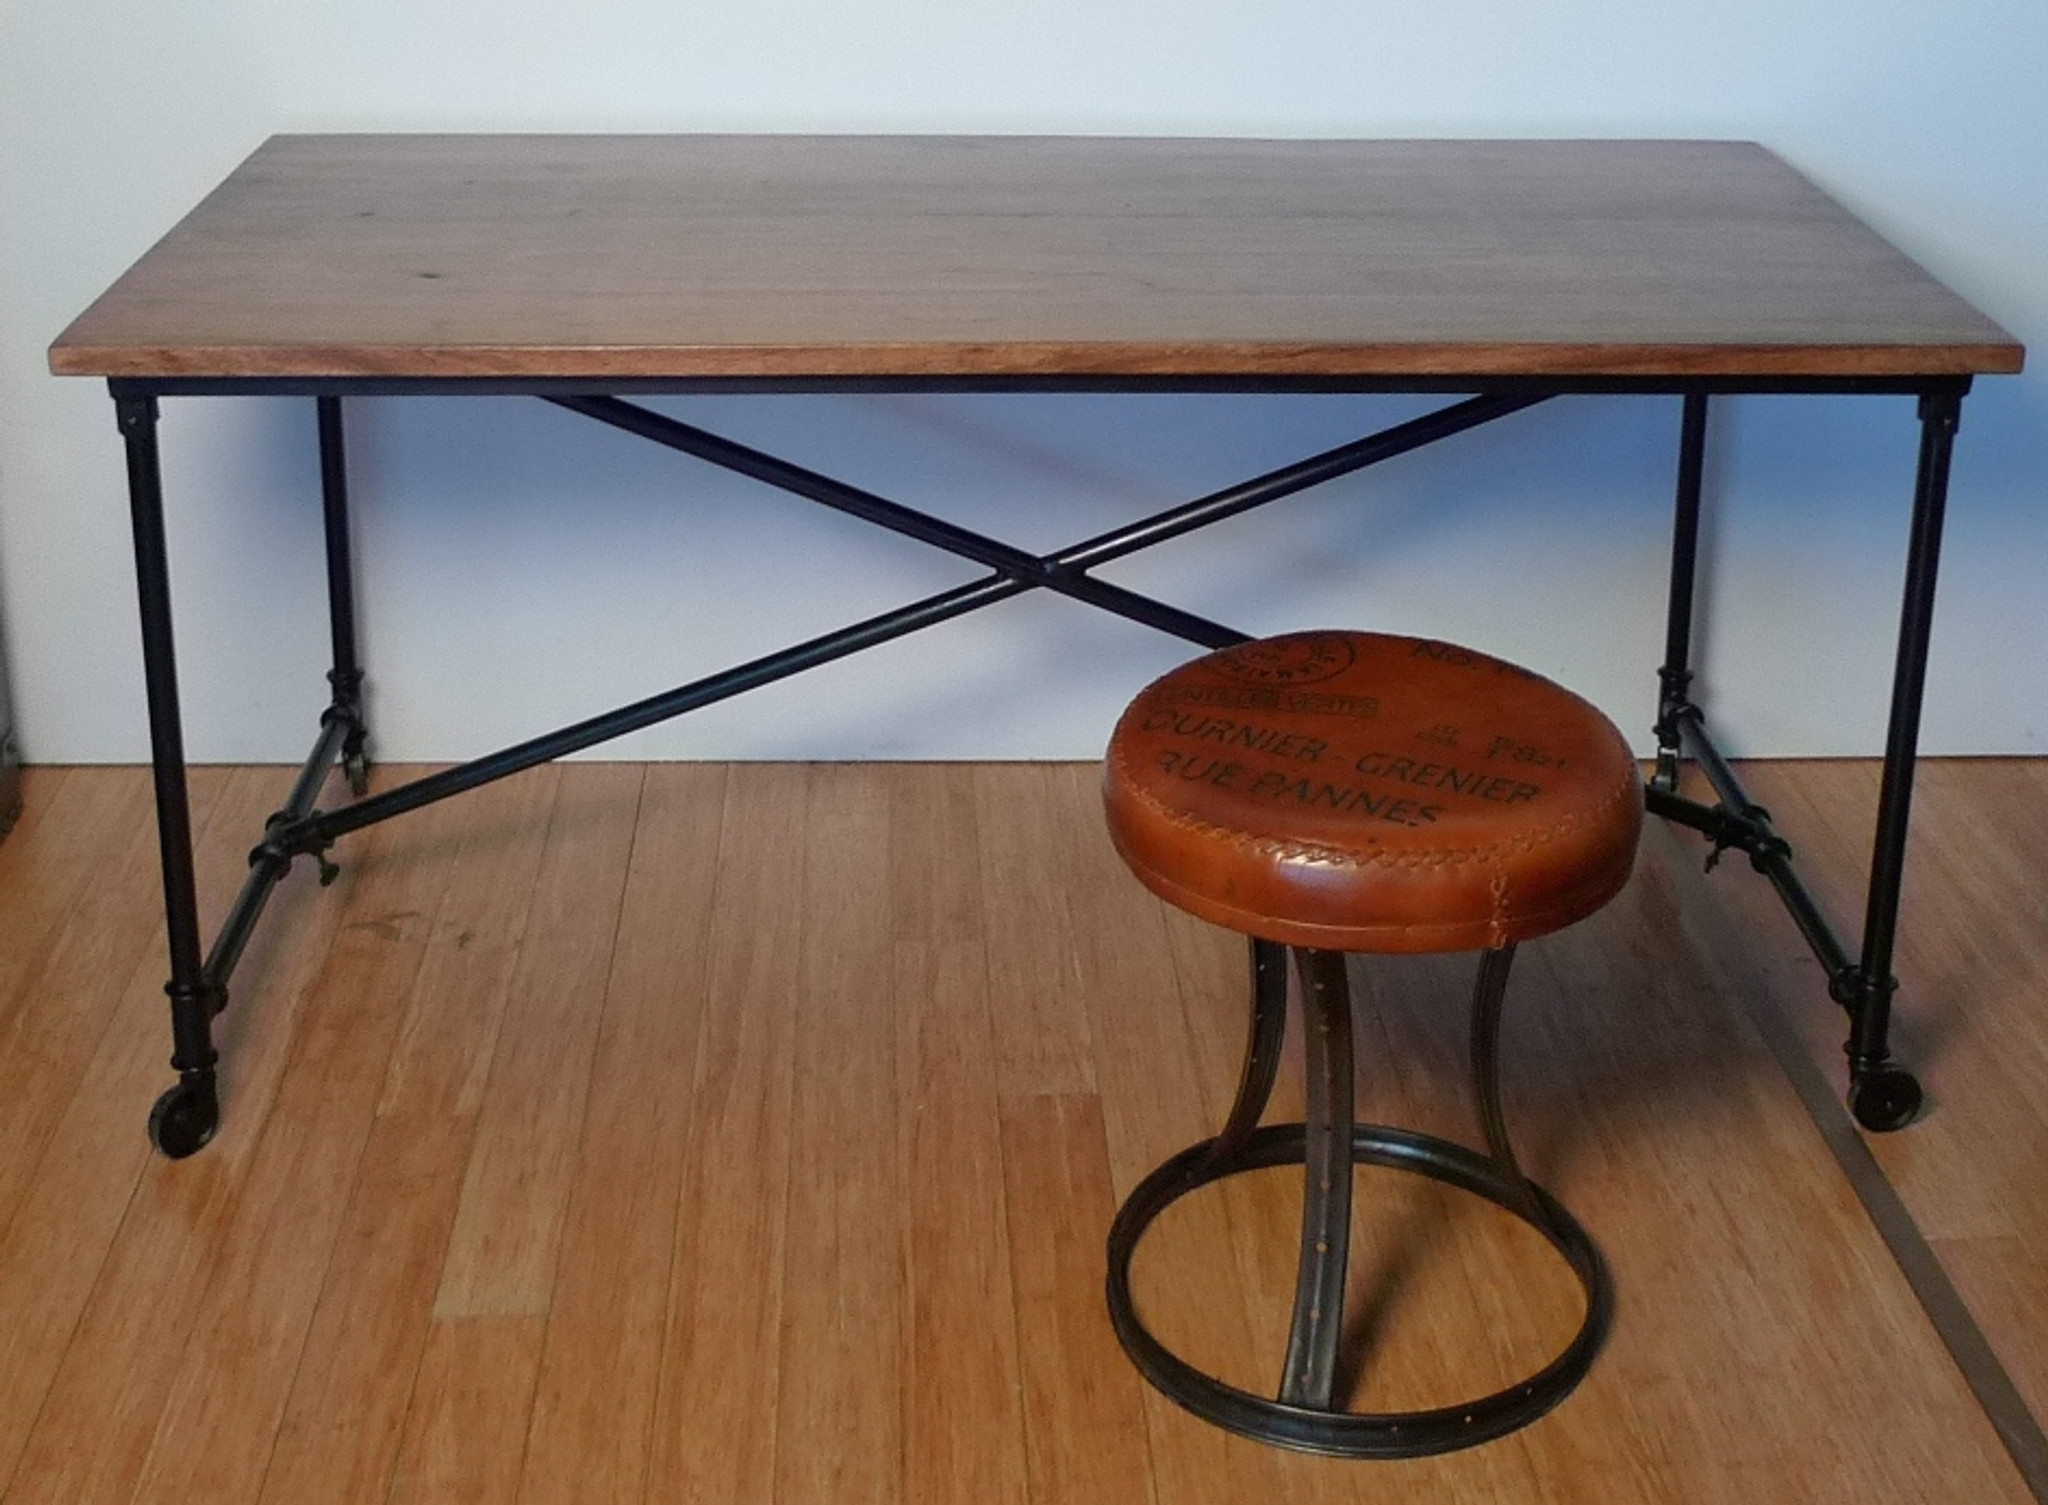 Vintage Brisbane Industrial Metal Base Solid Timber Top Table Desk 160cm X 80cm X 76cm